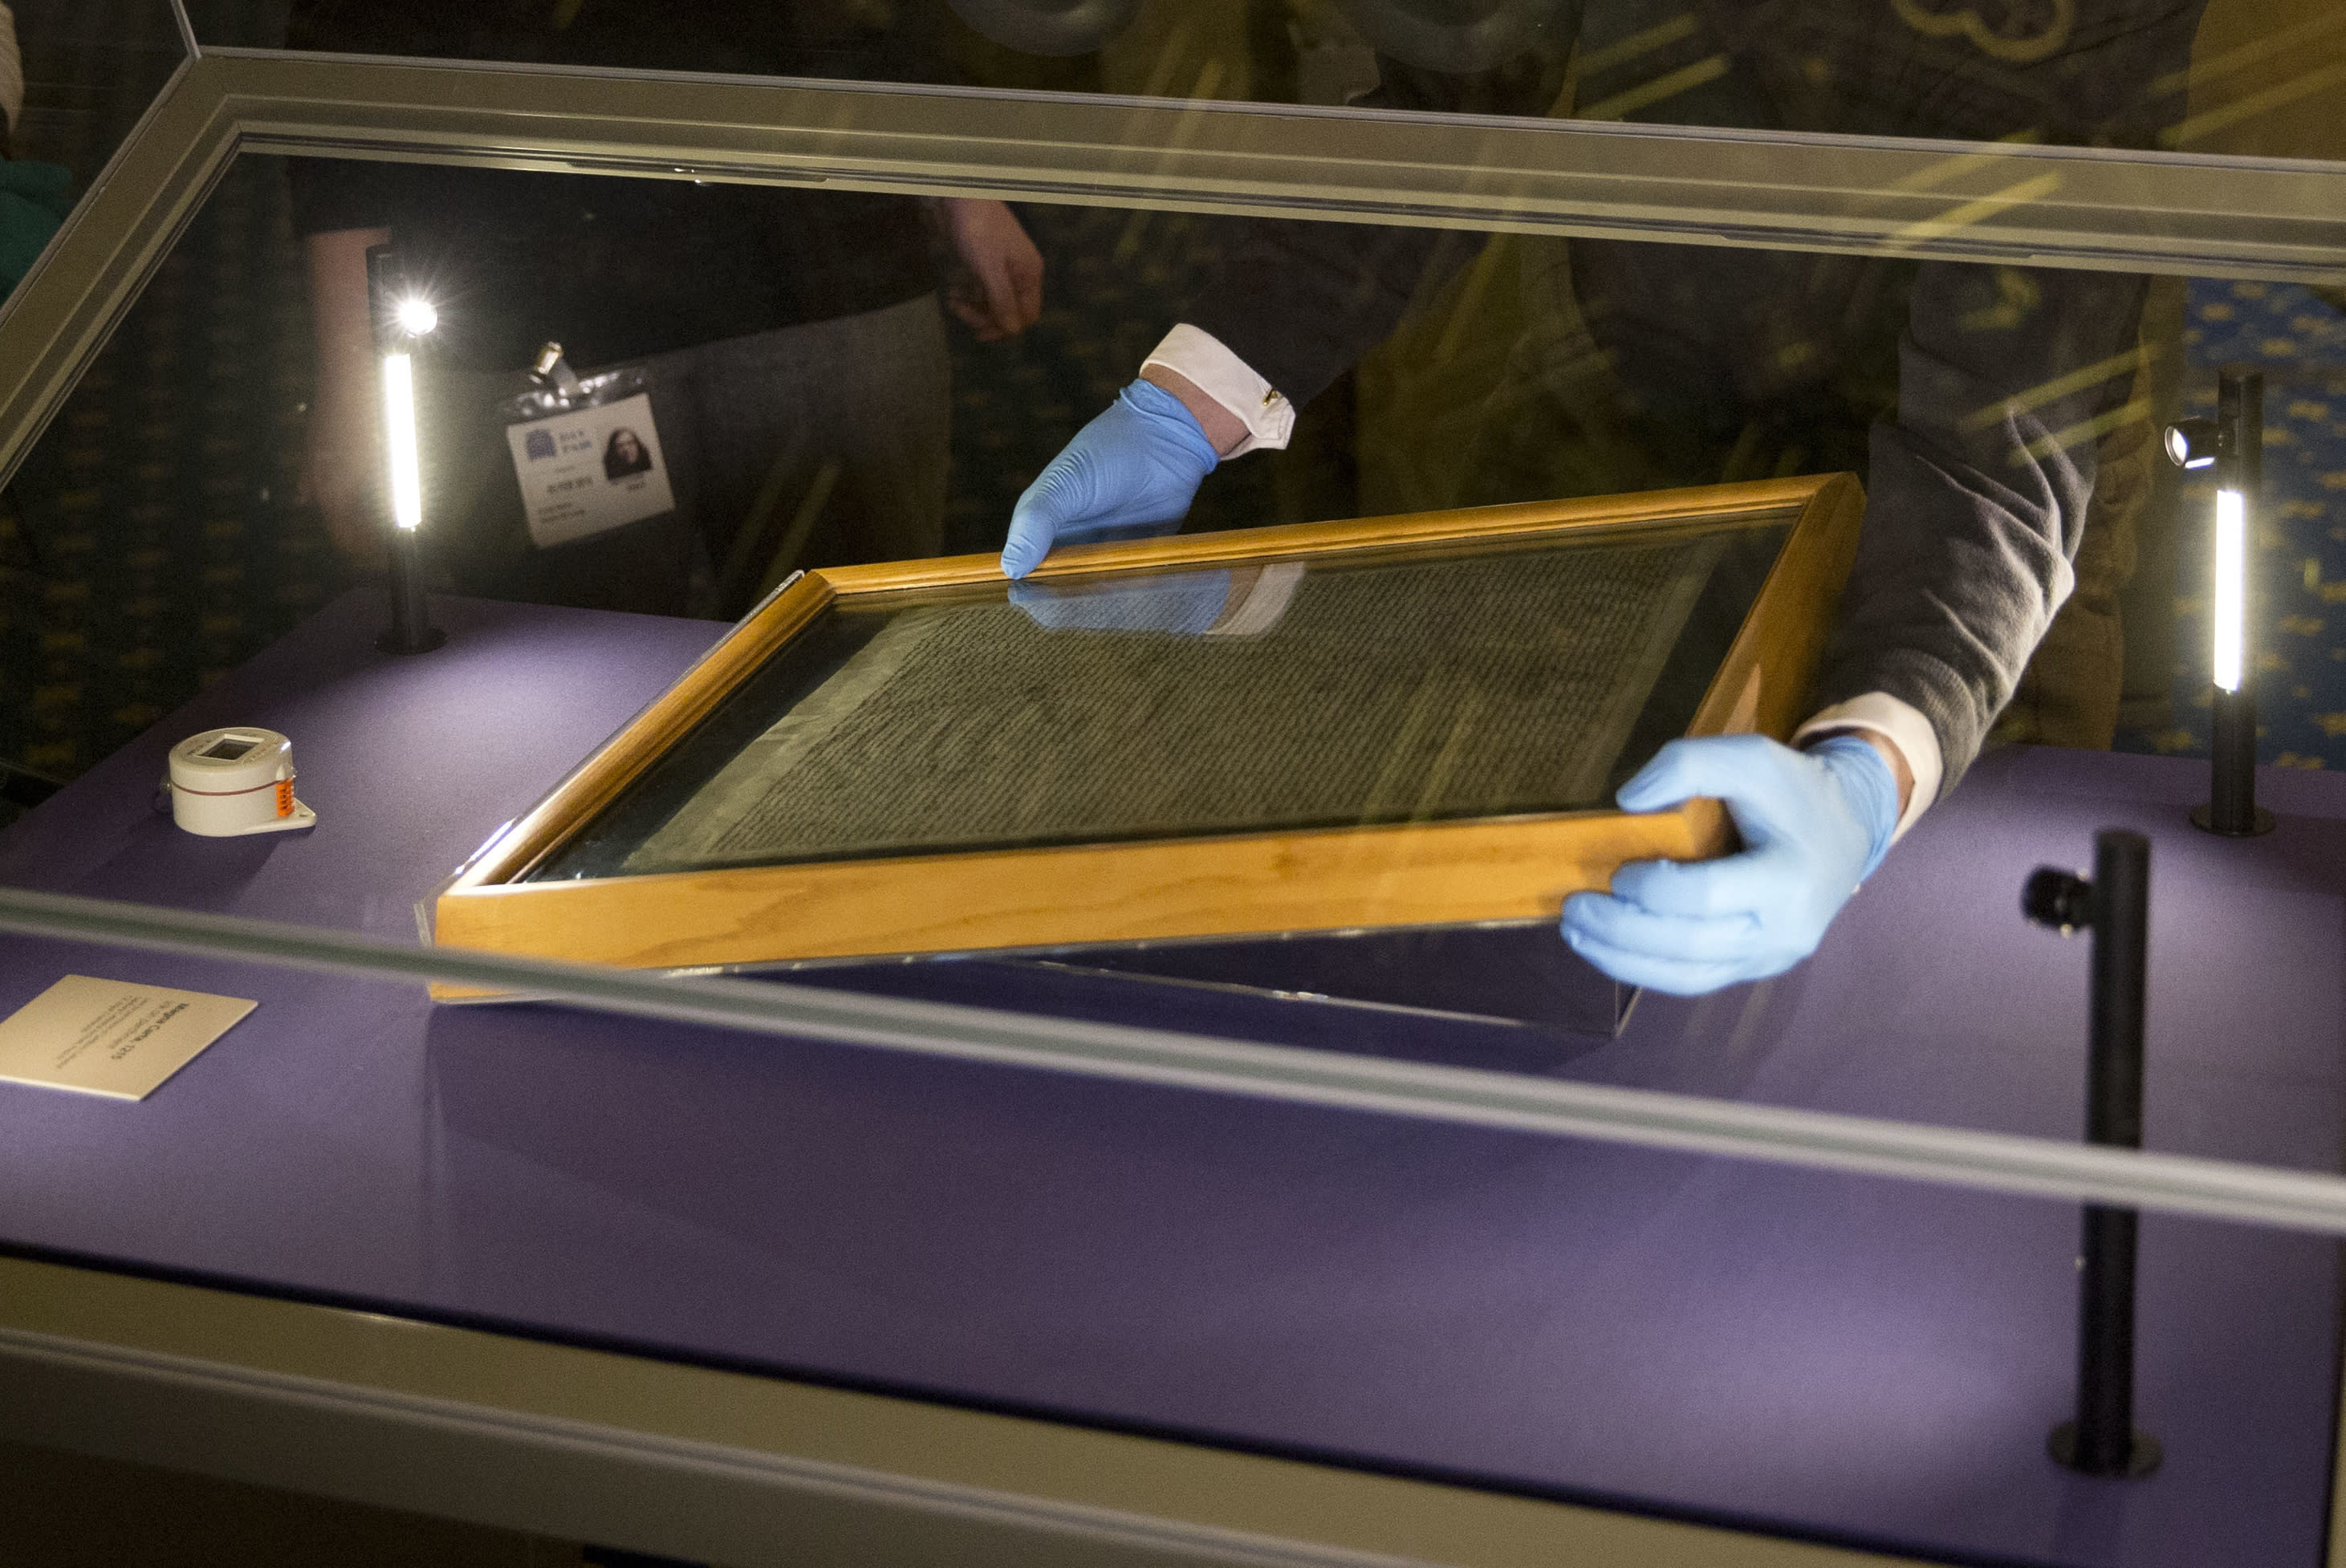 FILE - In this file photo dated Thursday, Feb. 5, 2015, The Salisbury Cathedral 1215 copy of the Magna Carta is installed in a glass display cabinet marking the 800th anniversary of the sealing of Magna Carta at Runnymede in 1215, in Salisbury, England. British police said Friday Oct. 26, 2018, that cathedral alarms sounded Thursday afternoon when a person tried to smash the glass display box surrounding the Magna Carta in Salisbury Cathedral, and a man has been arrested. (AP Photo/Matt Dunham, FILE)